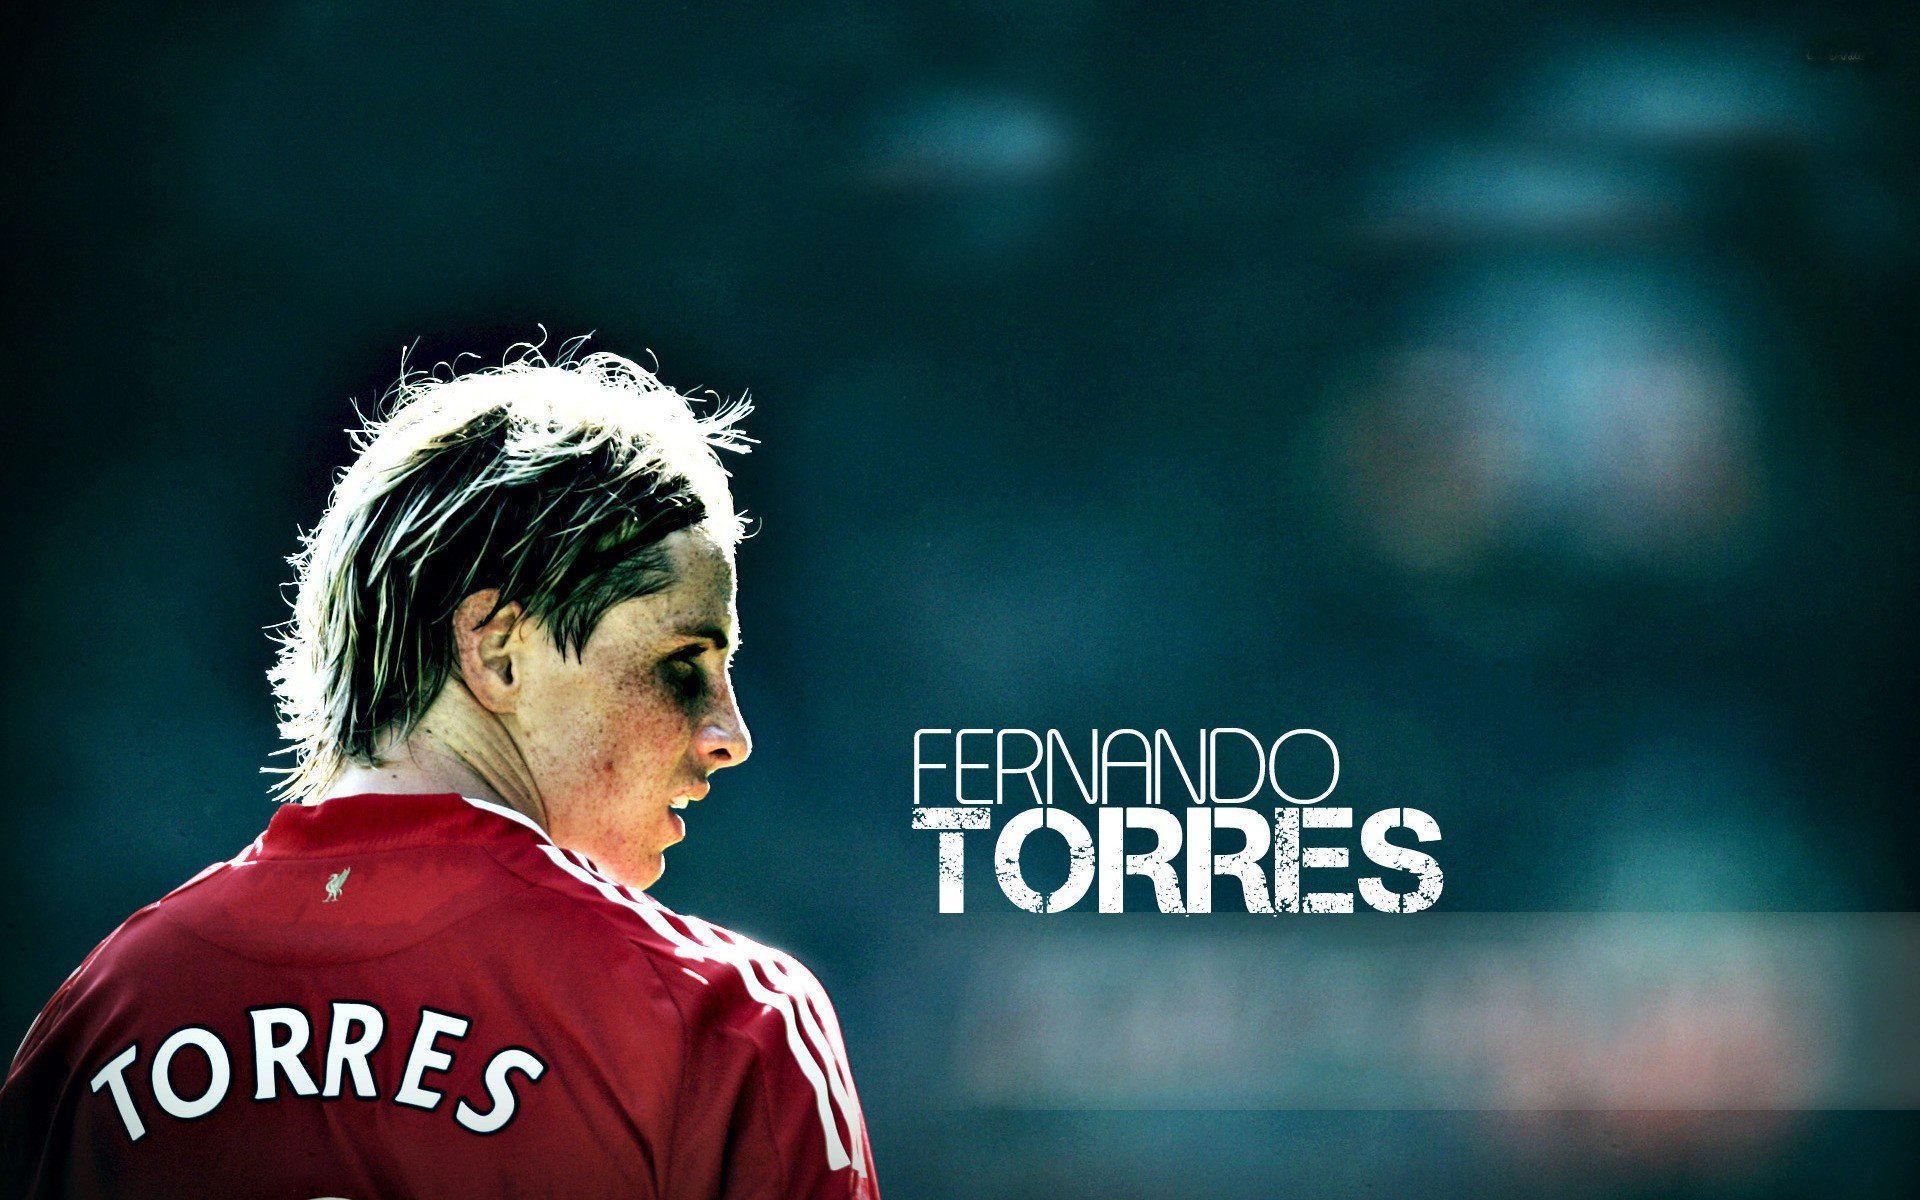 Fernando Torres Wallpapers   New HD Wallpapers 1920x1200